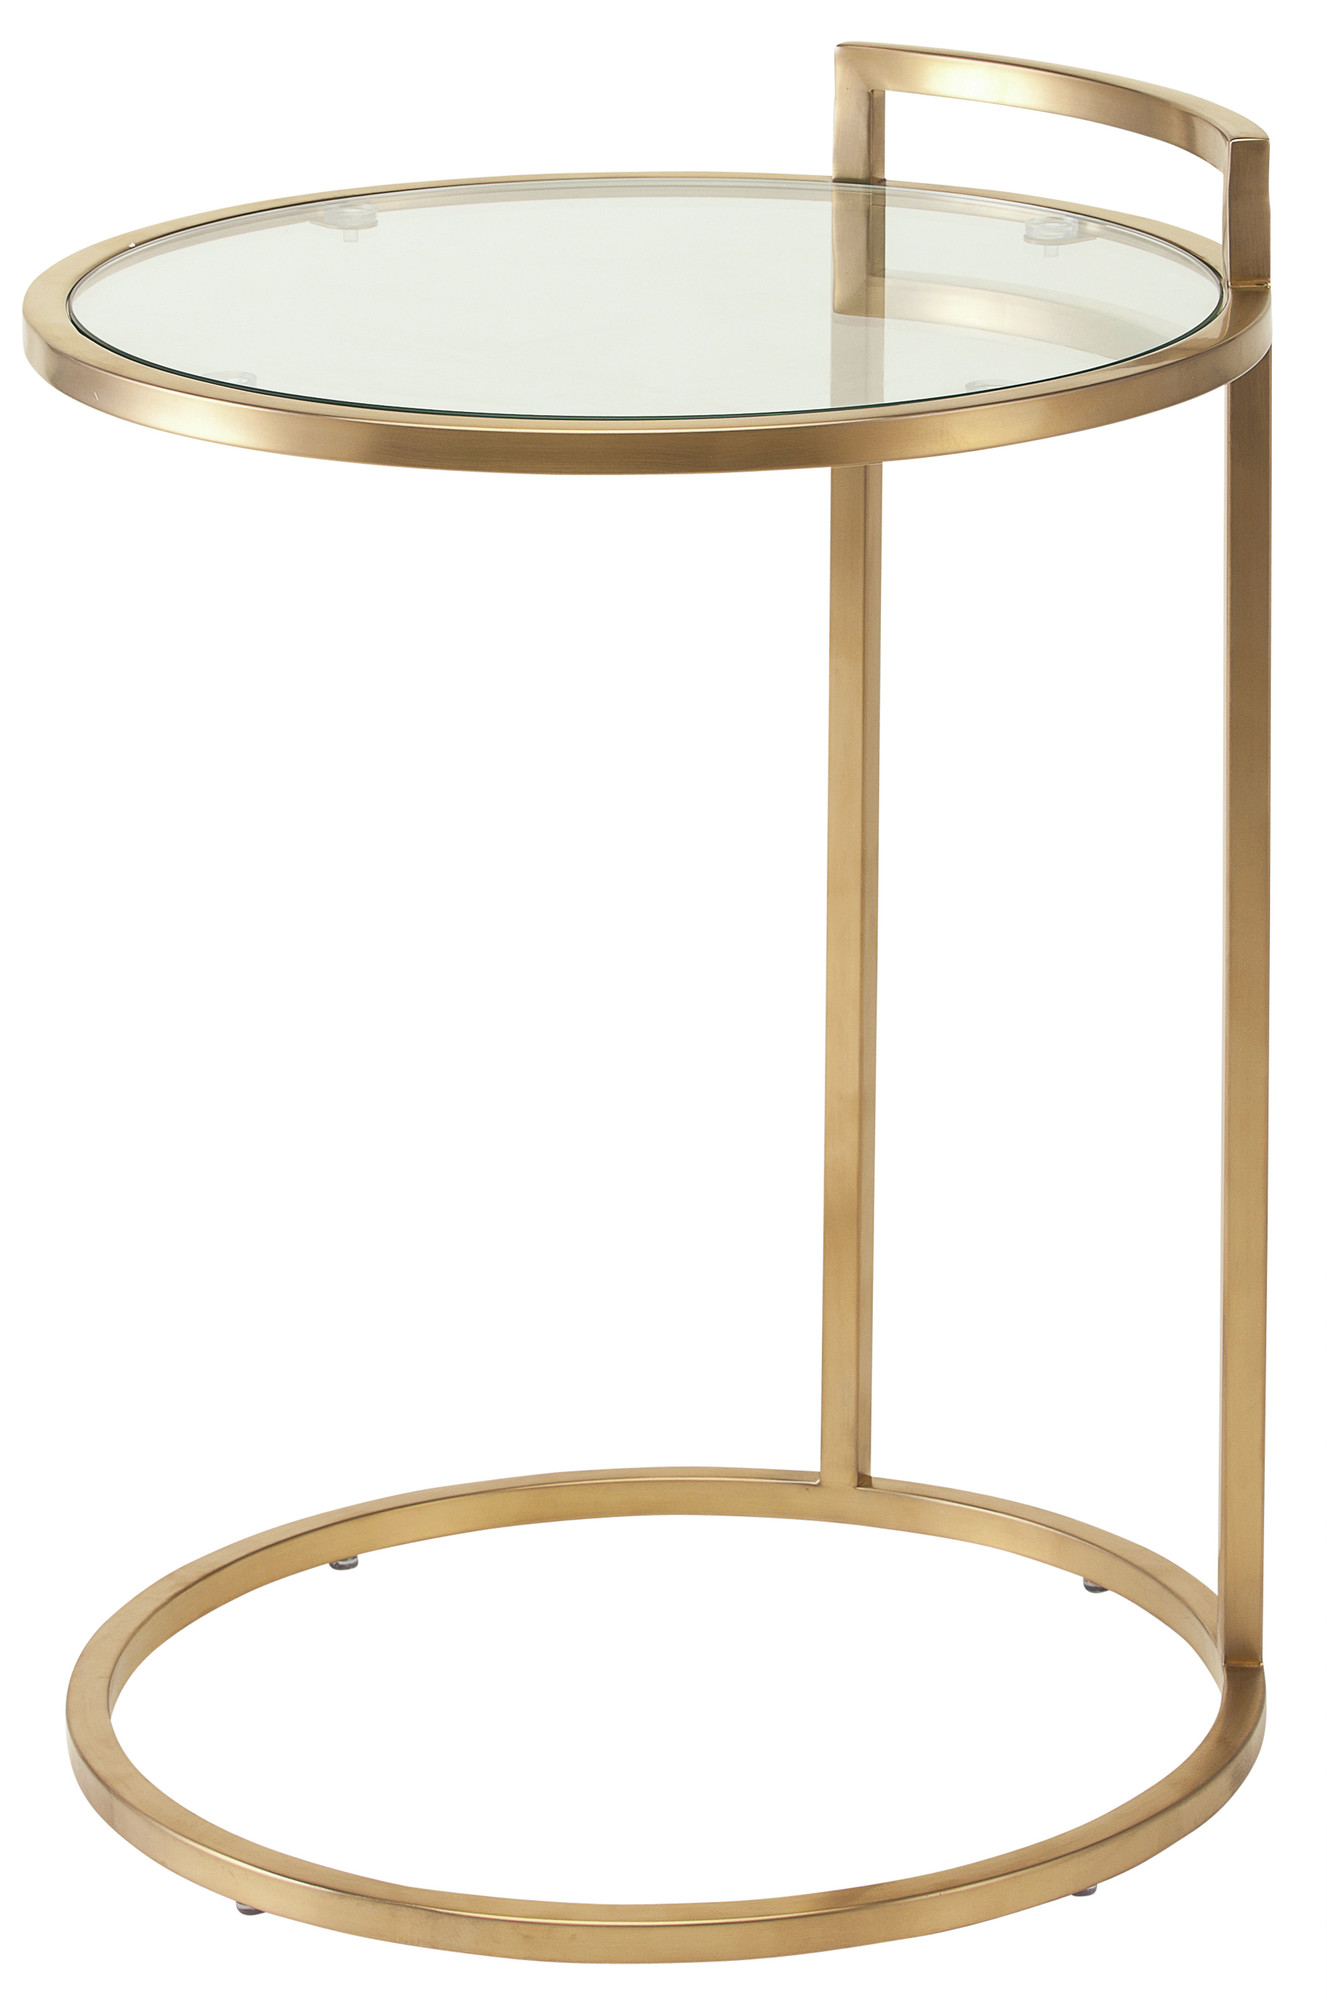 gold side table birtansogutma lily nuevo living modern and end tables inside remodel black drum accent height console behind sofa silver nesting farmhouse dining room home decor